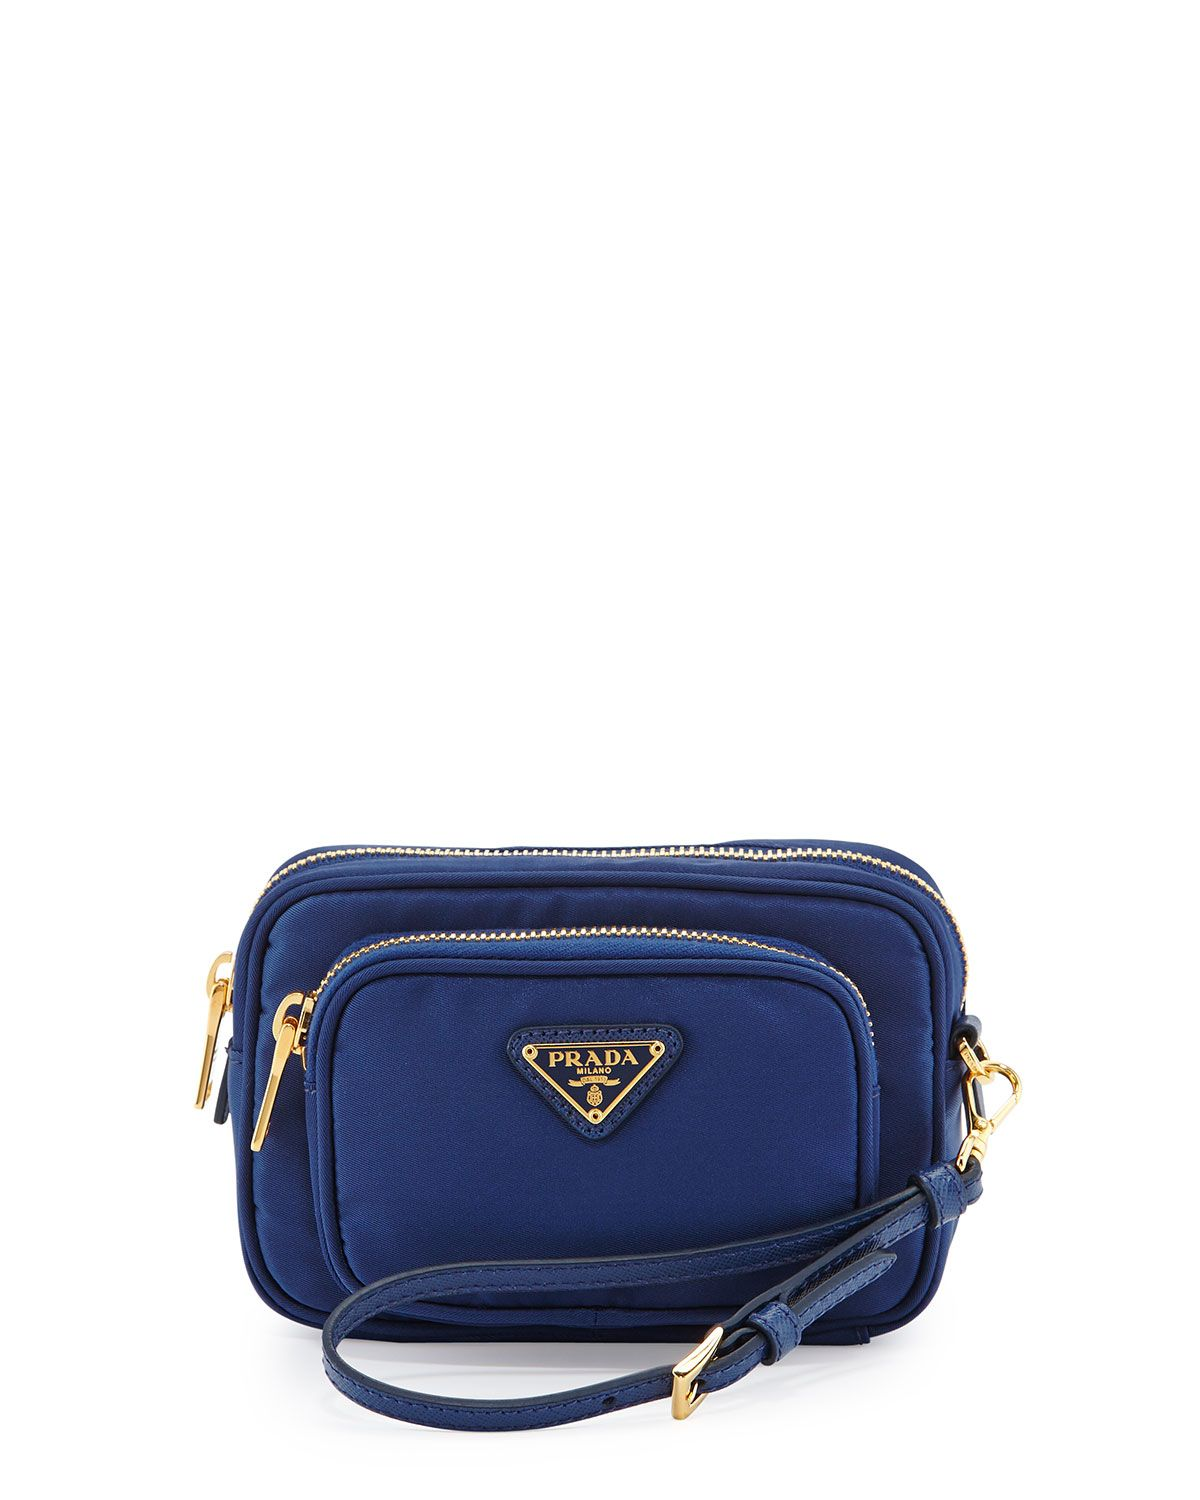 821c394dc24c czech prada bt0933 tessuto nylon saffiano leather trim crossbody bag royal.  roll on to zoom in b27c7 674dd  discount code for tessuto small pocket  crossbody ...